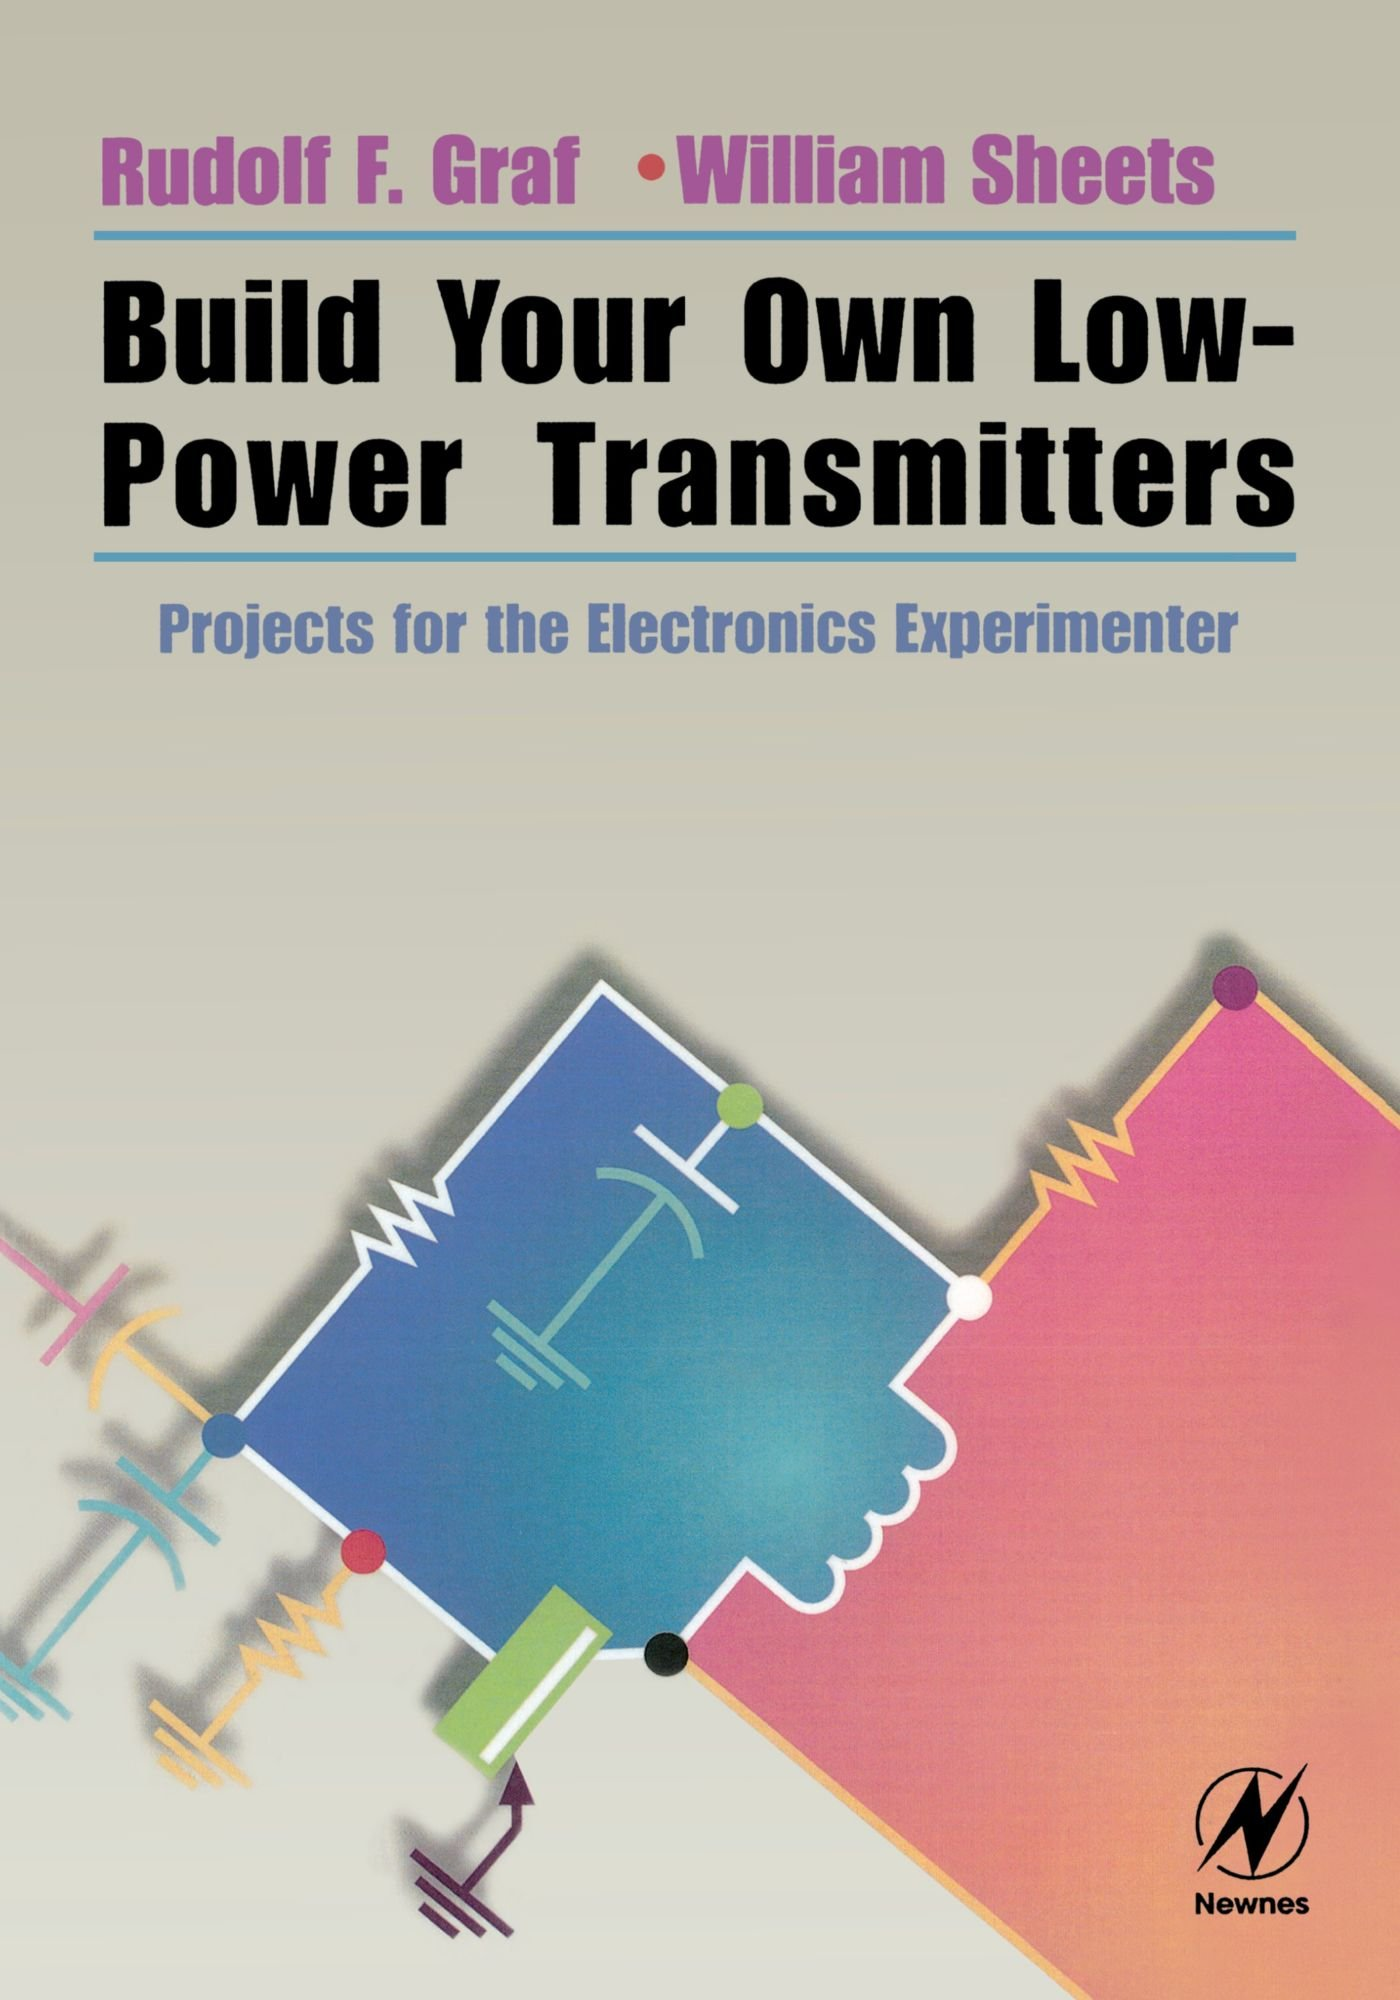 Build Your Own Low Power Transmitters Projects For The Electronics Fm Transmitter 1 Watt 1w High Circuit Board Radio Experimenter Rudolf F Graf William Sheets 9780750672443 Books